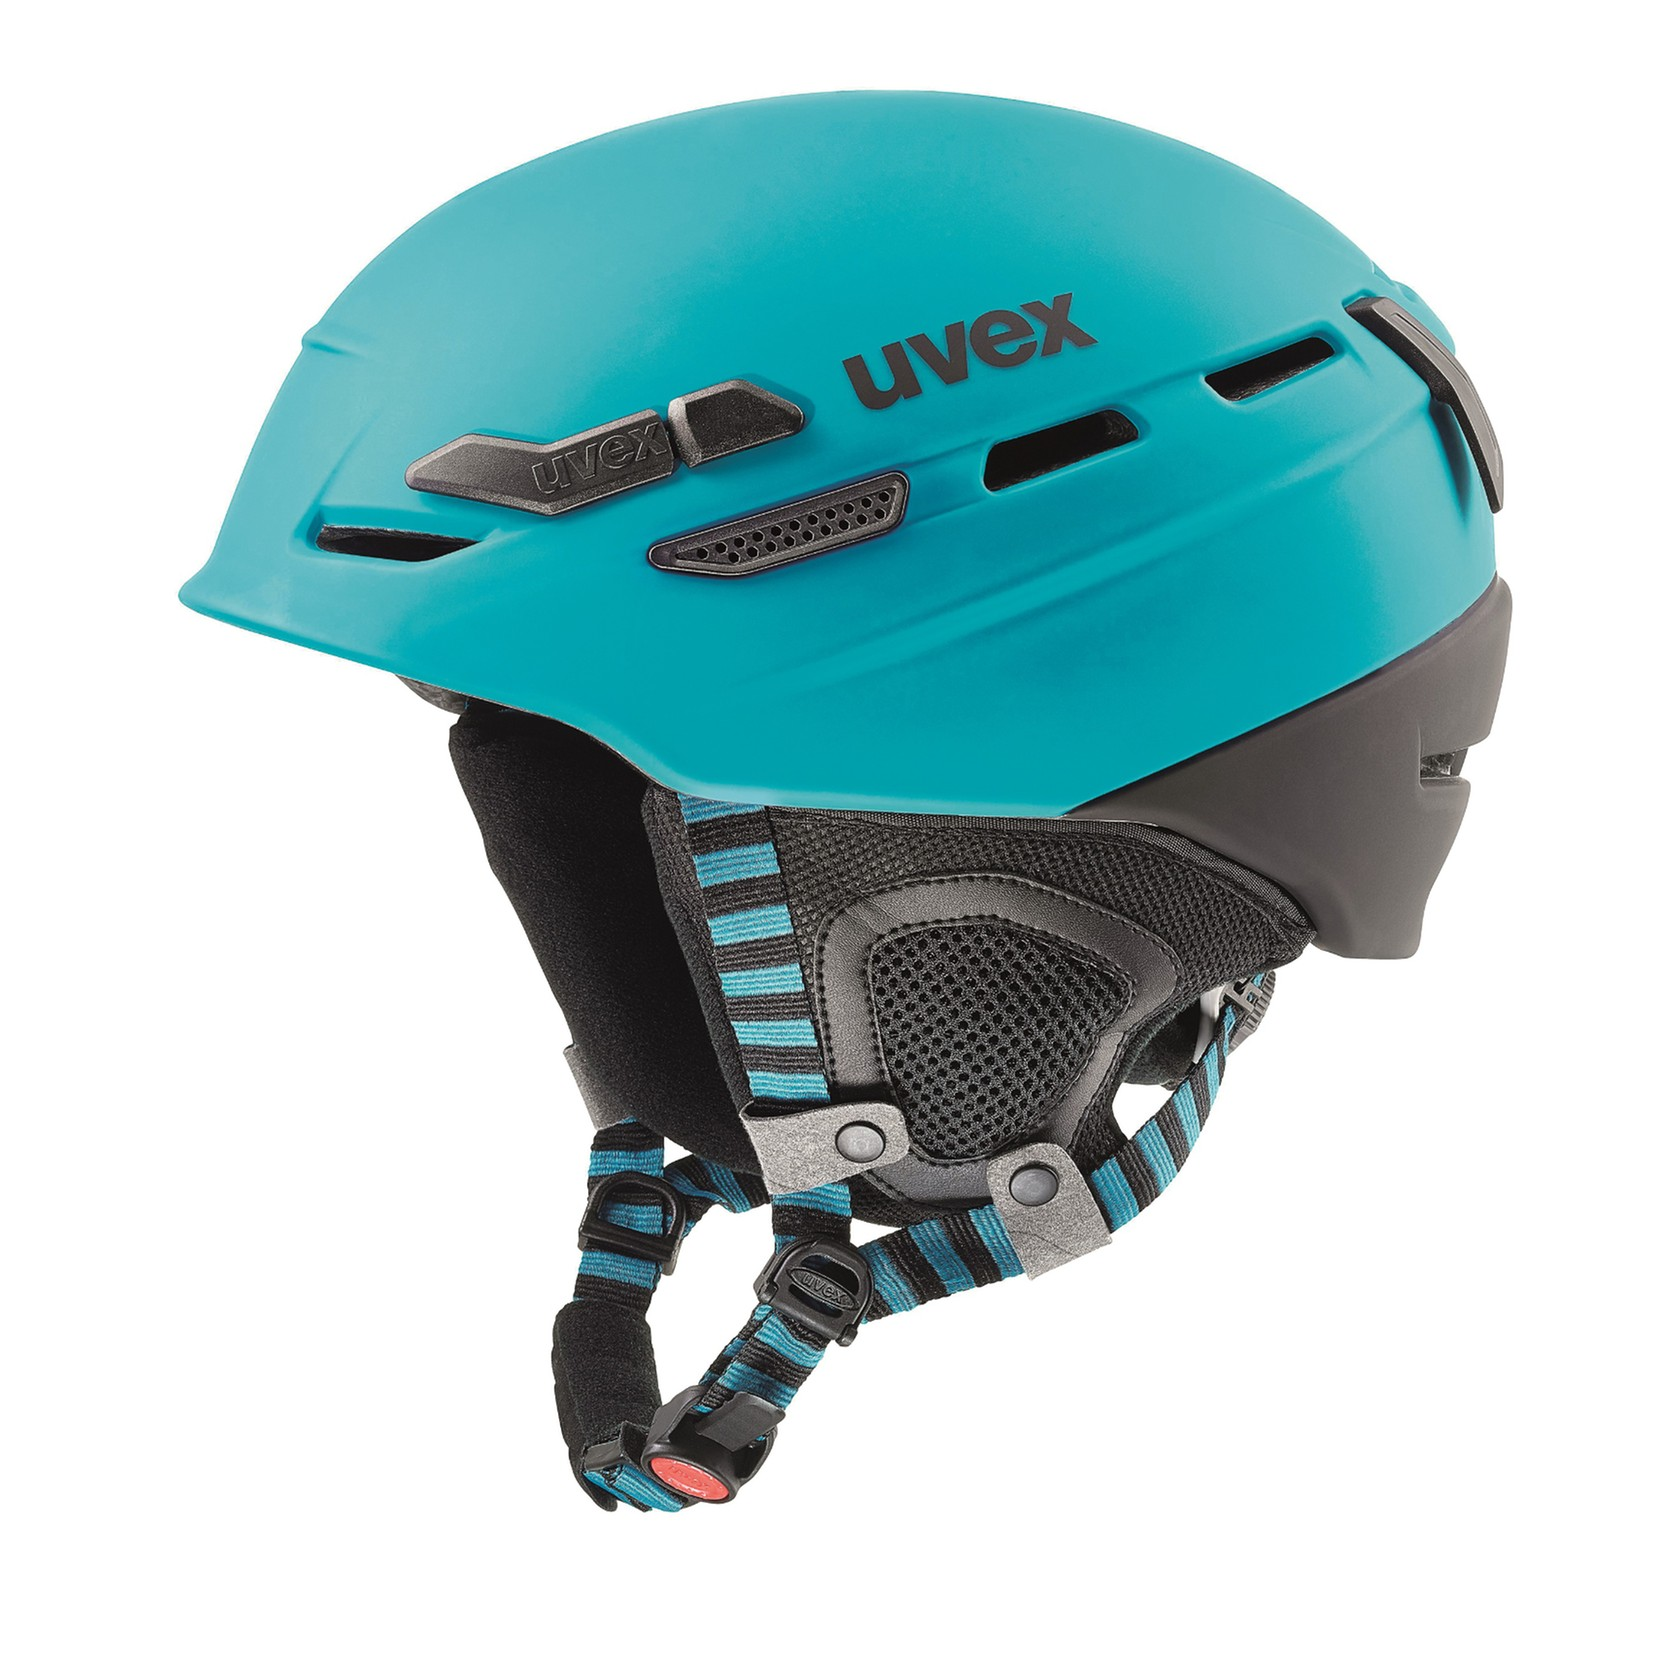 Uvex p.8000 tour - casco